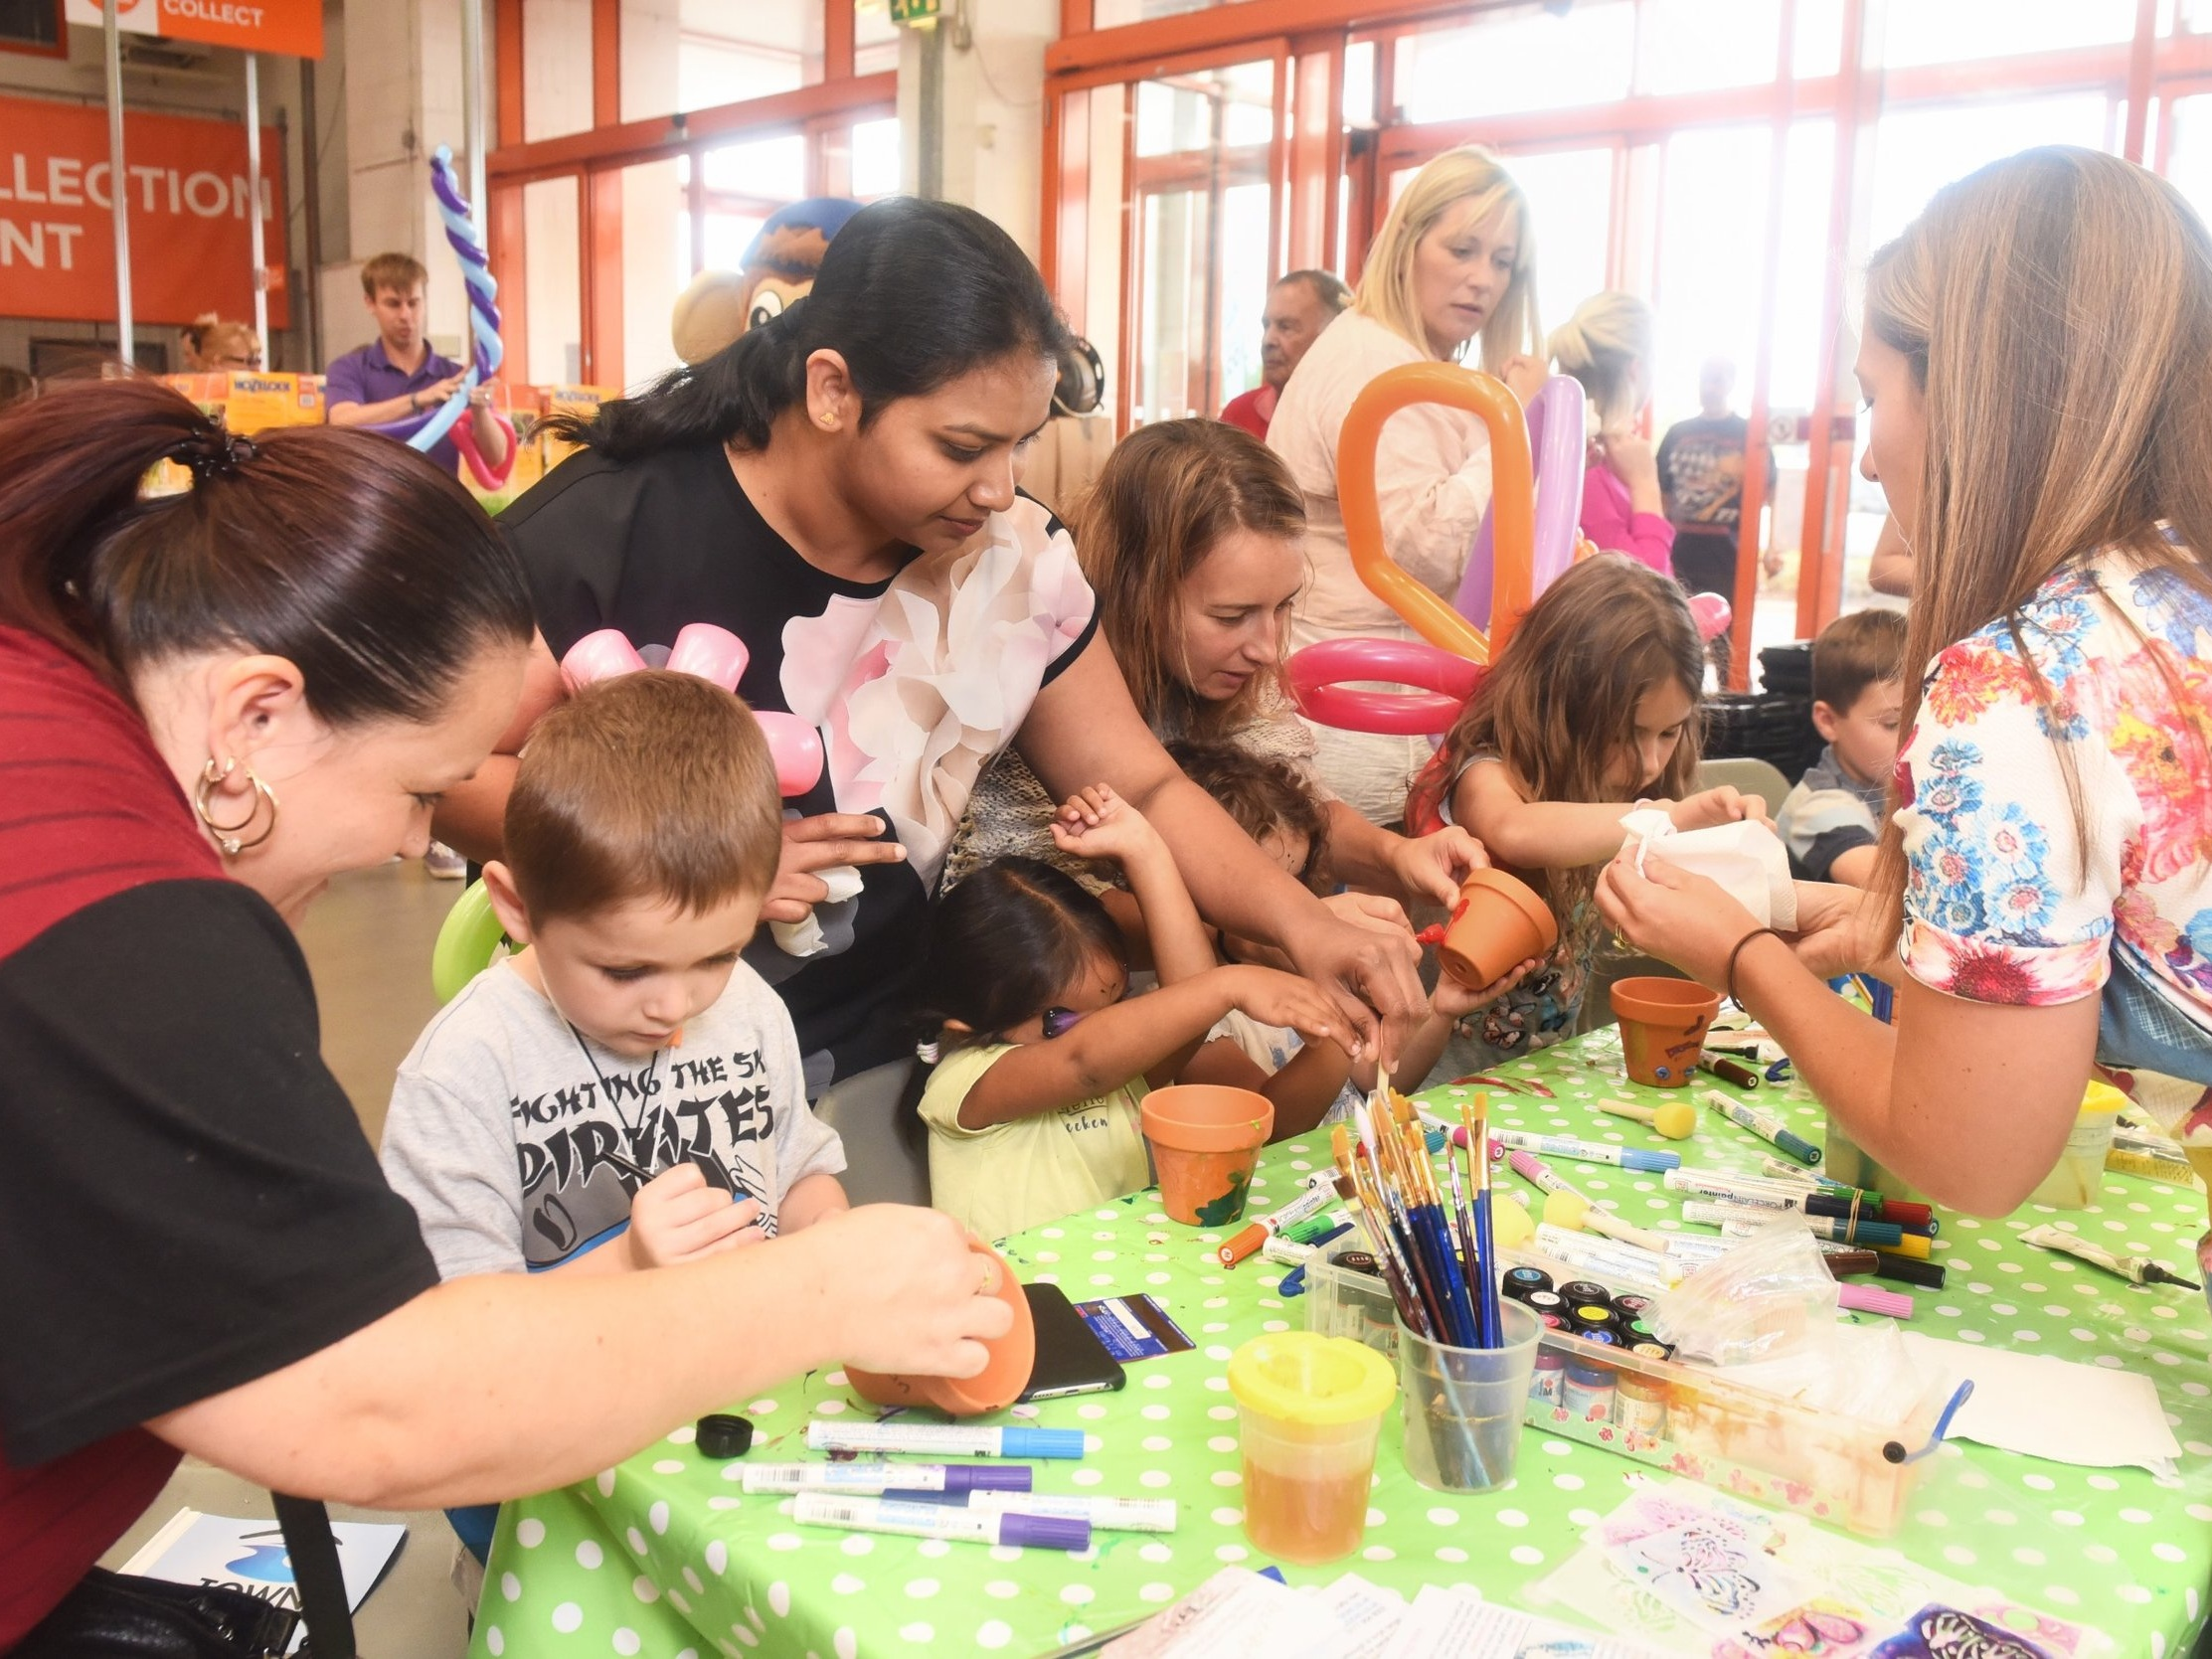 Free flowing craft station events nationwide